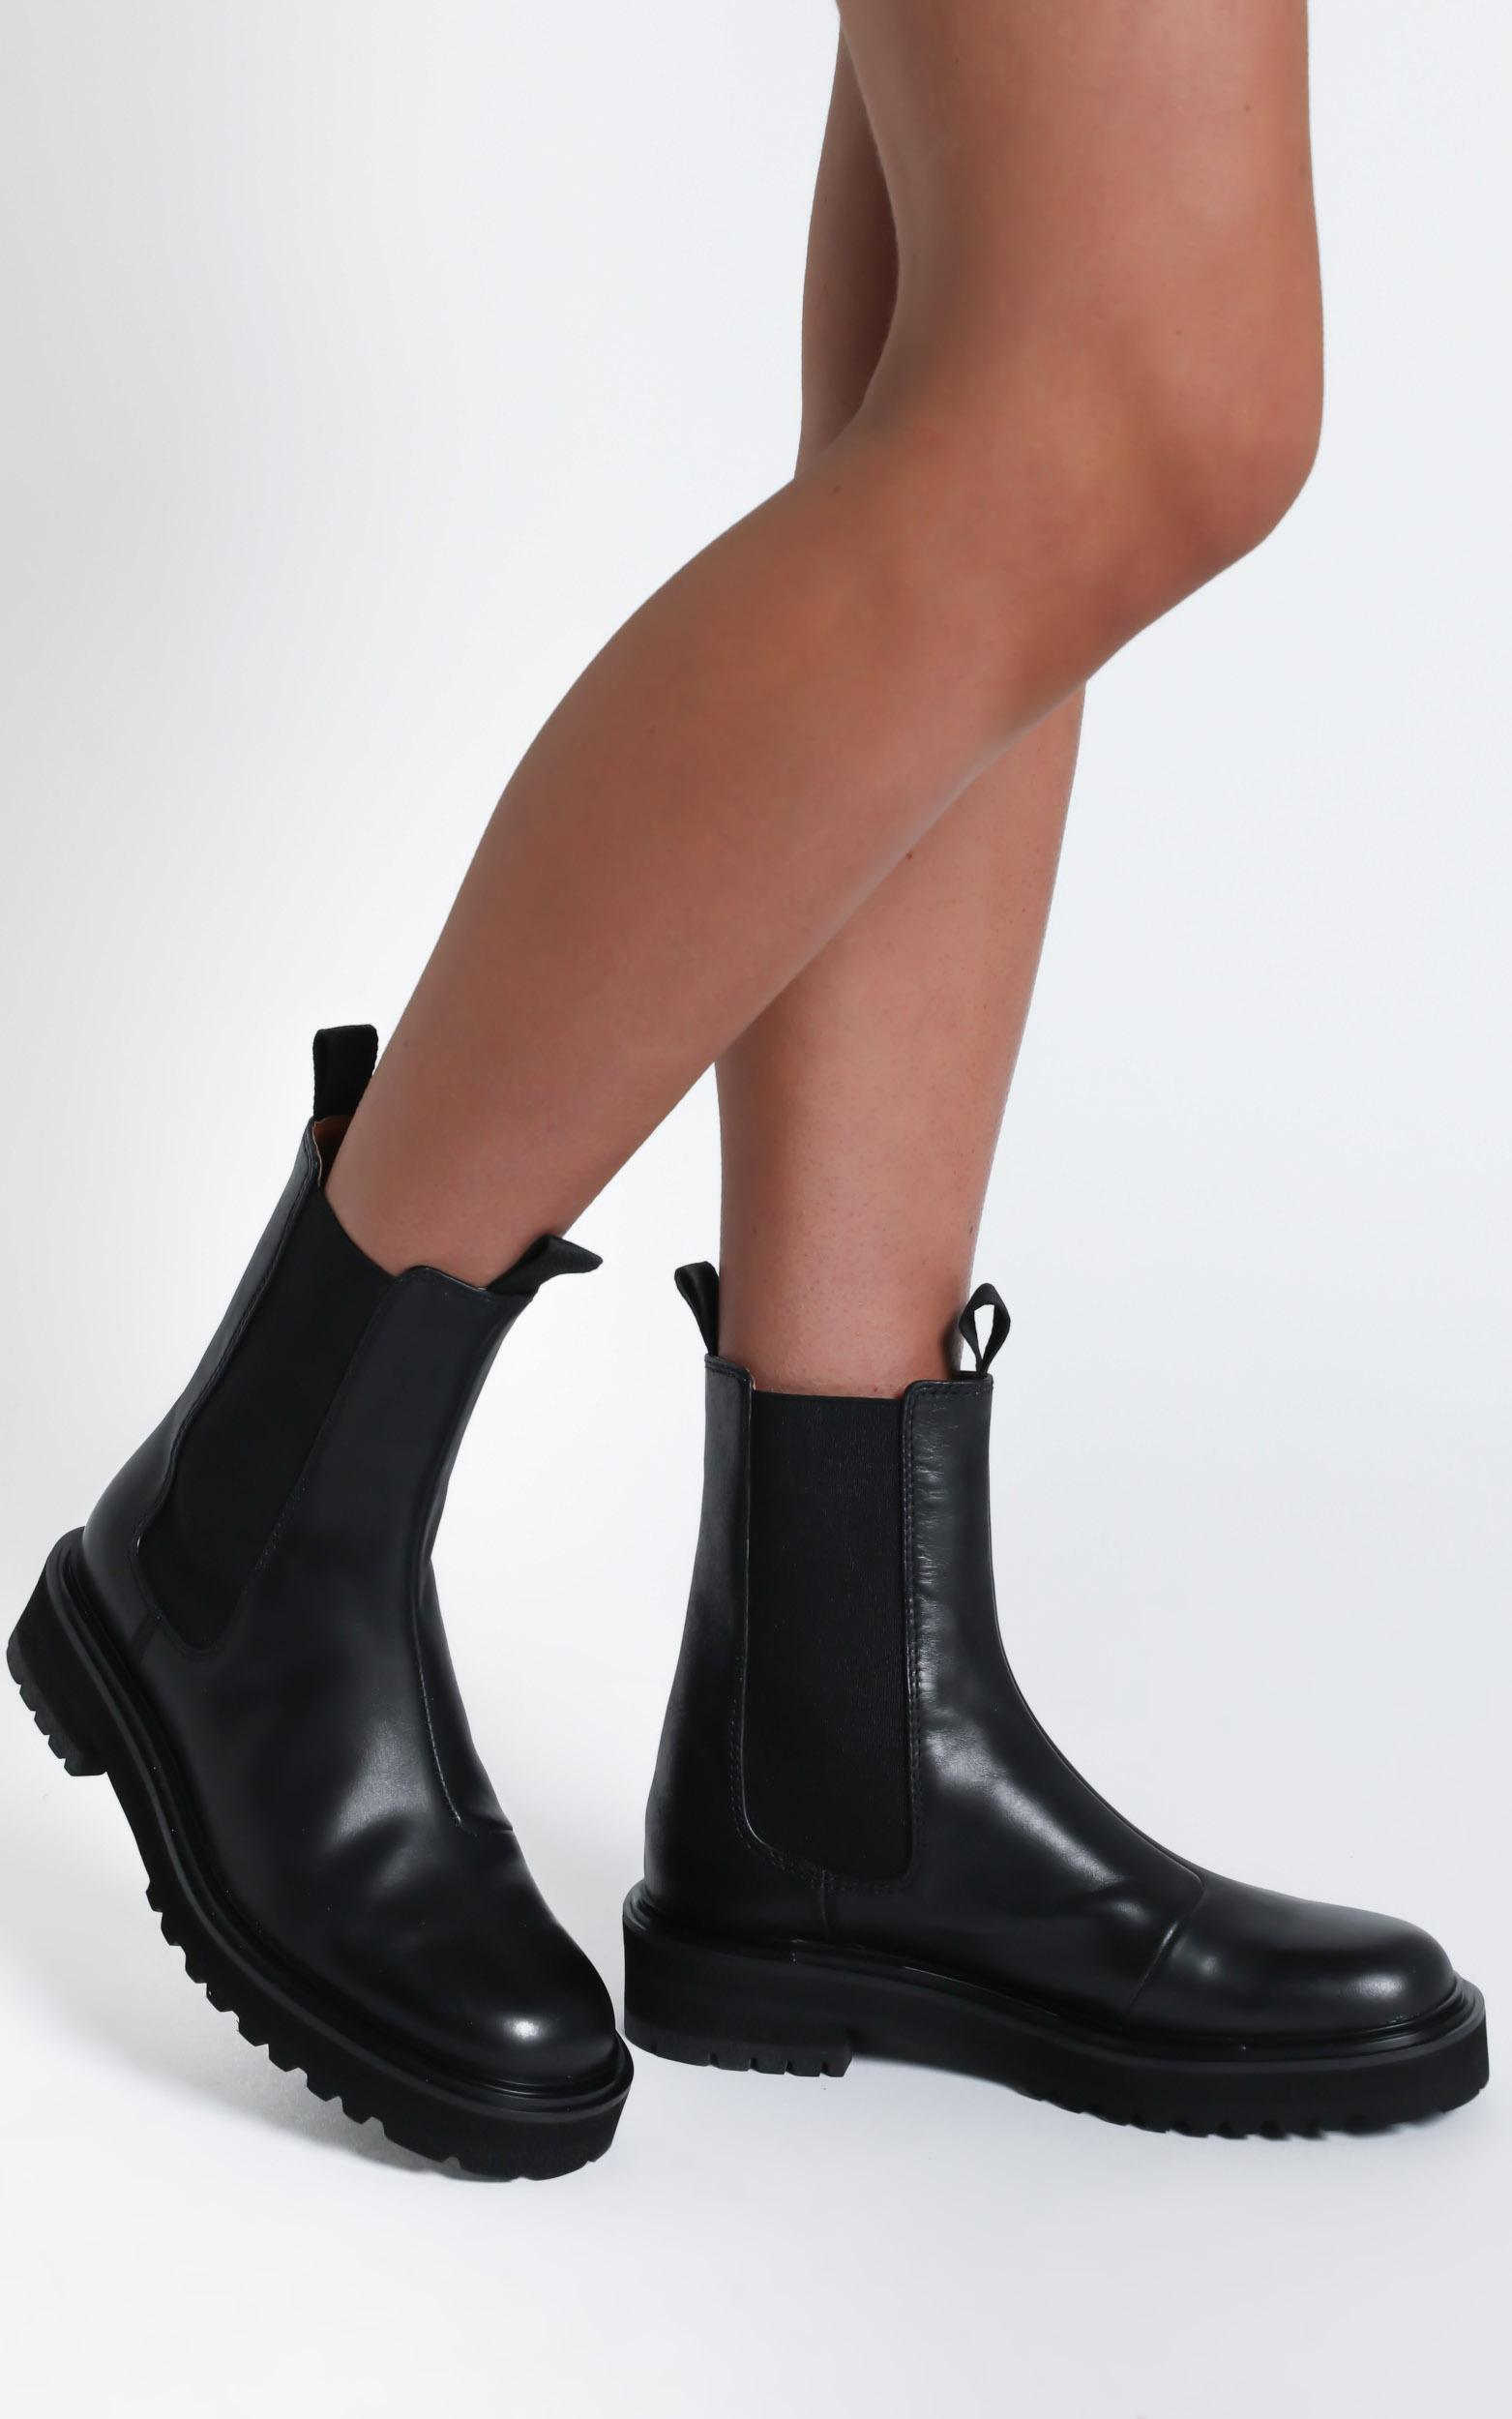 Alias Mae - Romi Boots in Black Burnished - 5.5, BLK2, hi-res image number null